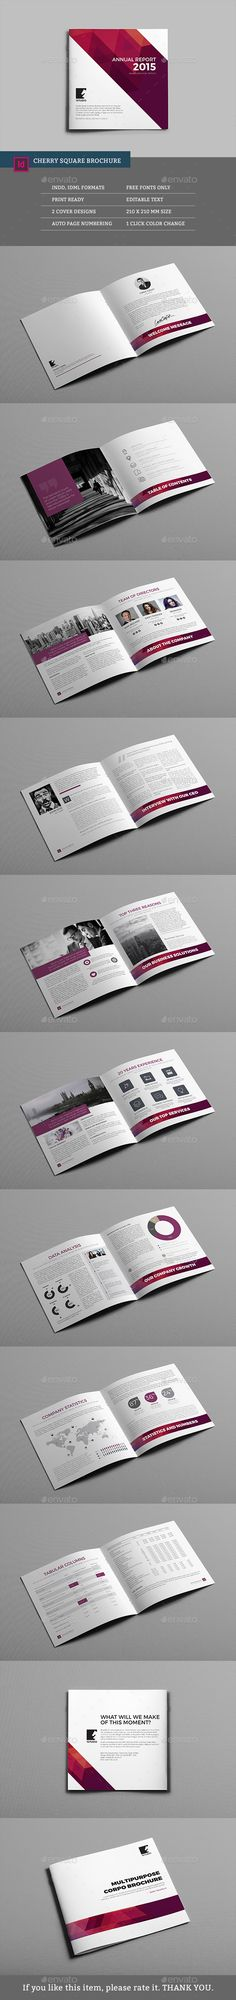 Buy Cherry Square Multipurpose Brochure by graphix_shiv on GraphicRiver. Cherry Square Multipurpose Brochure – Features Cherry Square Multipurpose Brochure Template that is super simple to e. Bi Fold Brochure, Brochure Layout, Business Brochure, Brochure Template, Corporate Brochure, Page Layout Design, Book Layout, Graphic Design Brochure, Booklet Design